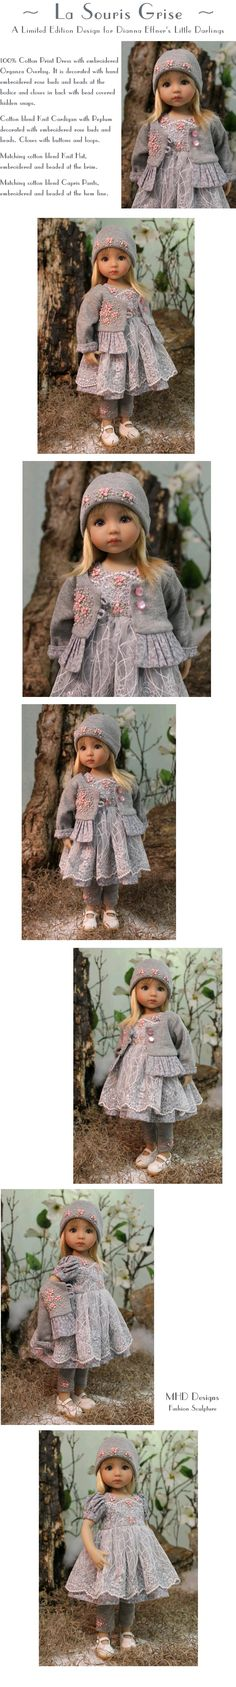 """La Souris Grise"" a Limited Edition Design for Dianna Effner's Little Darlings by Doll Artist Magalie Houle Dawson. Tiny Dolls, Ag Dolls, Barbie Dolls, American Doll Clothes, Ag Doll Clothes, American Girl, Porcelain Doll Costume, My Child Doll, Diana"